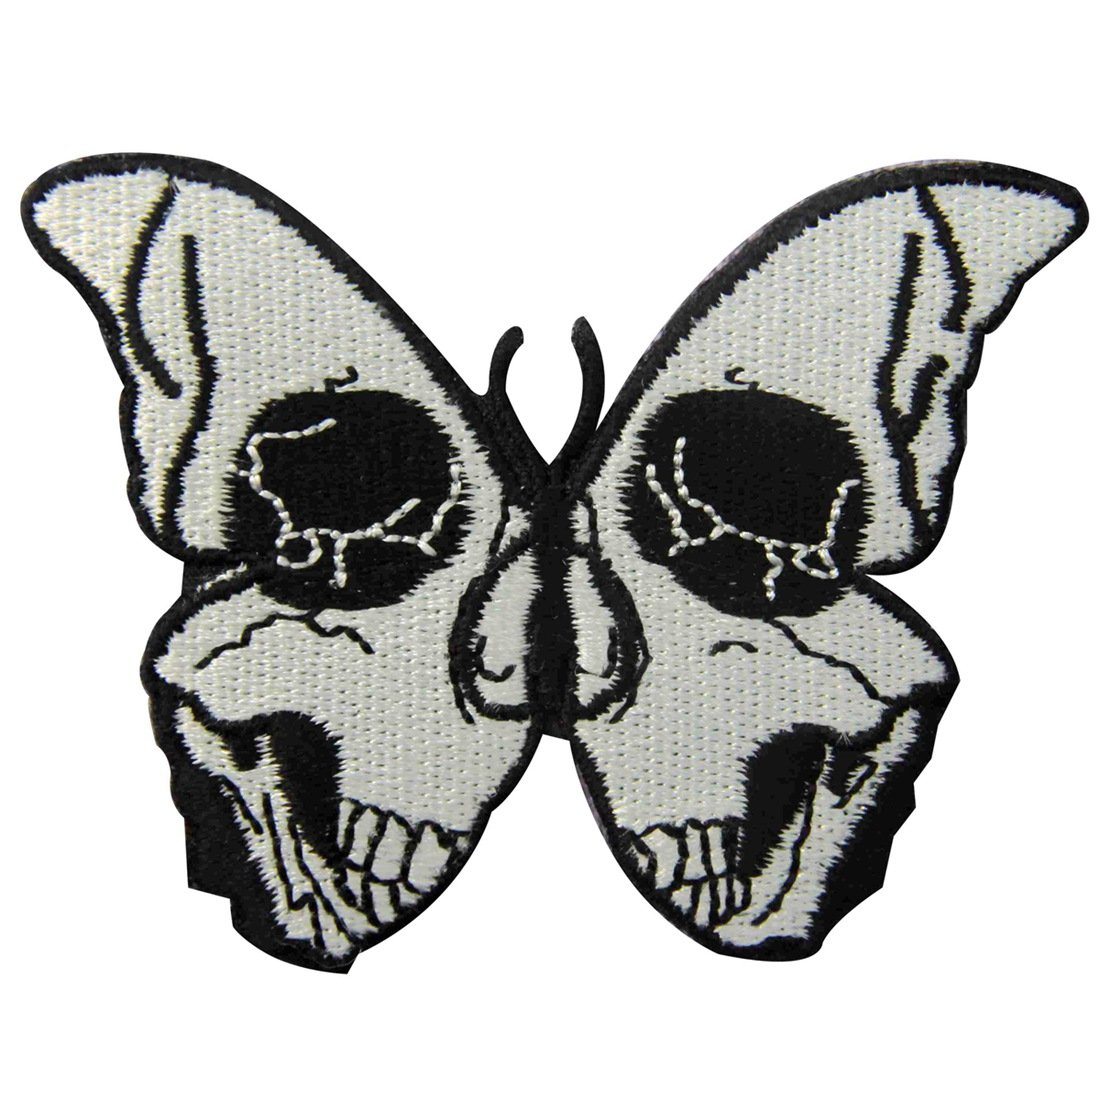 The Skull Butterfly Embroidered Badge Iron On Sew On Patch ZEGIN